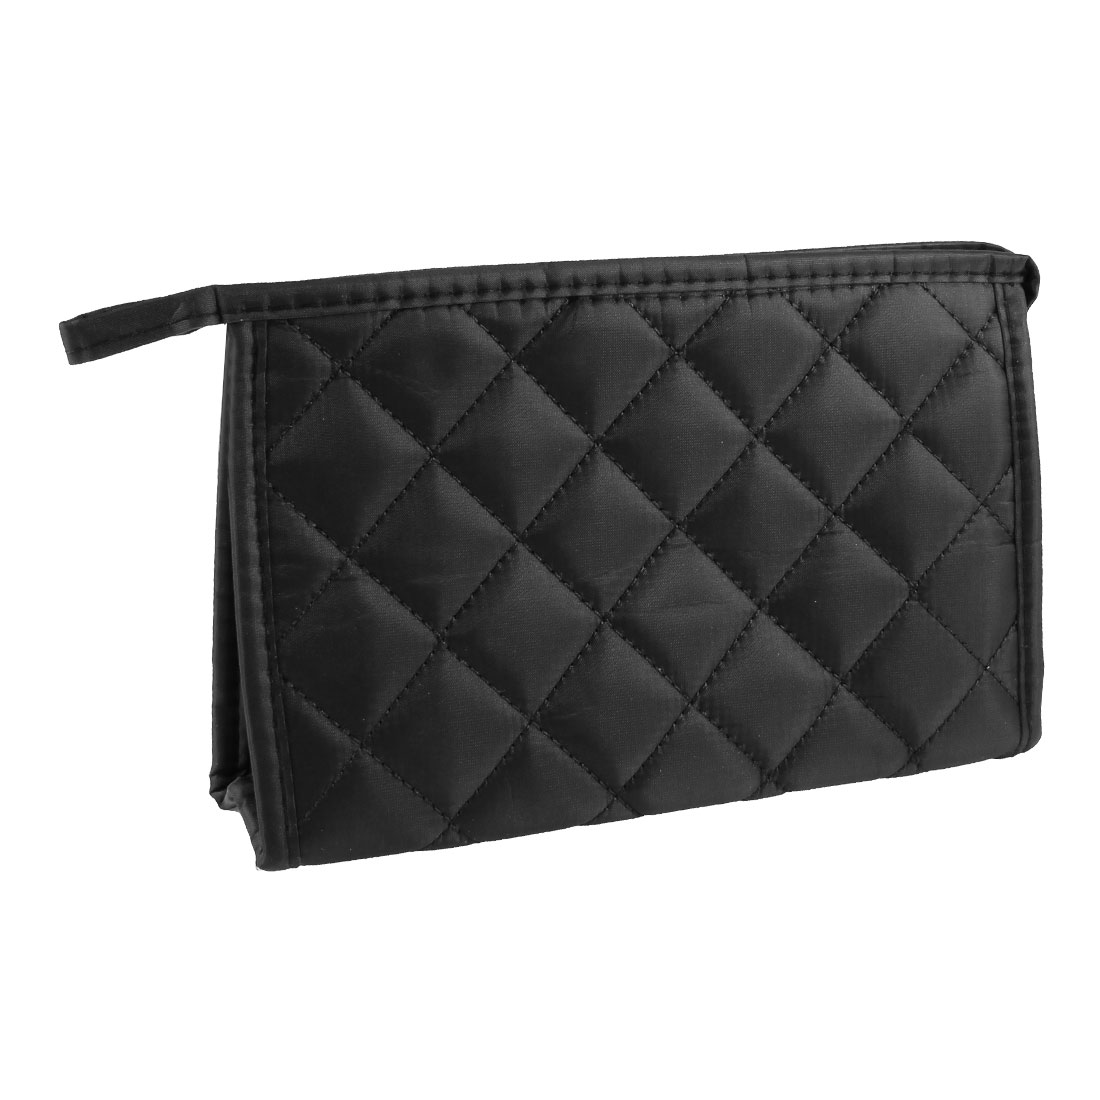 Black Rhombus Pattern Nylon Zipper Closure Cosmetic Pouch Bag for Ladies